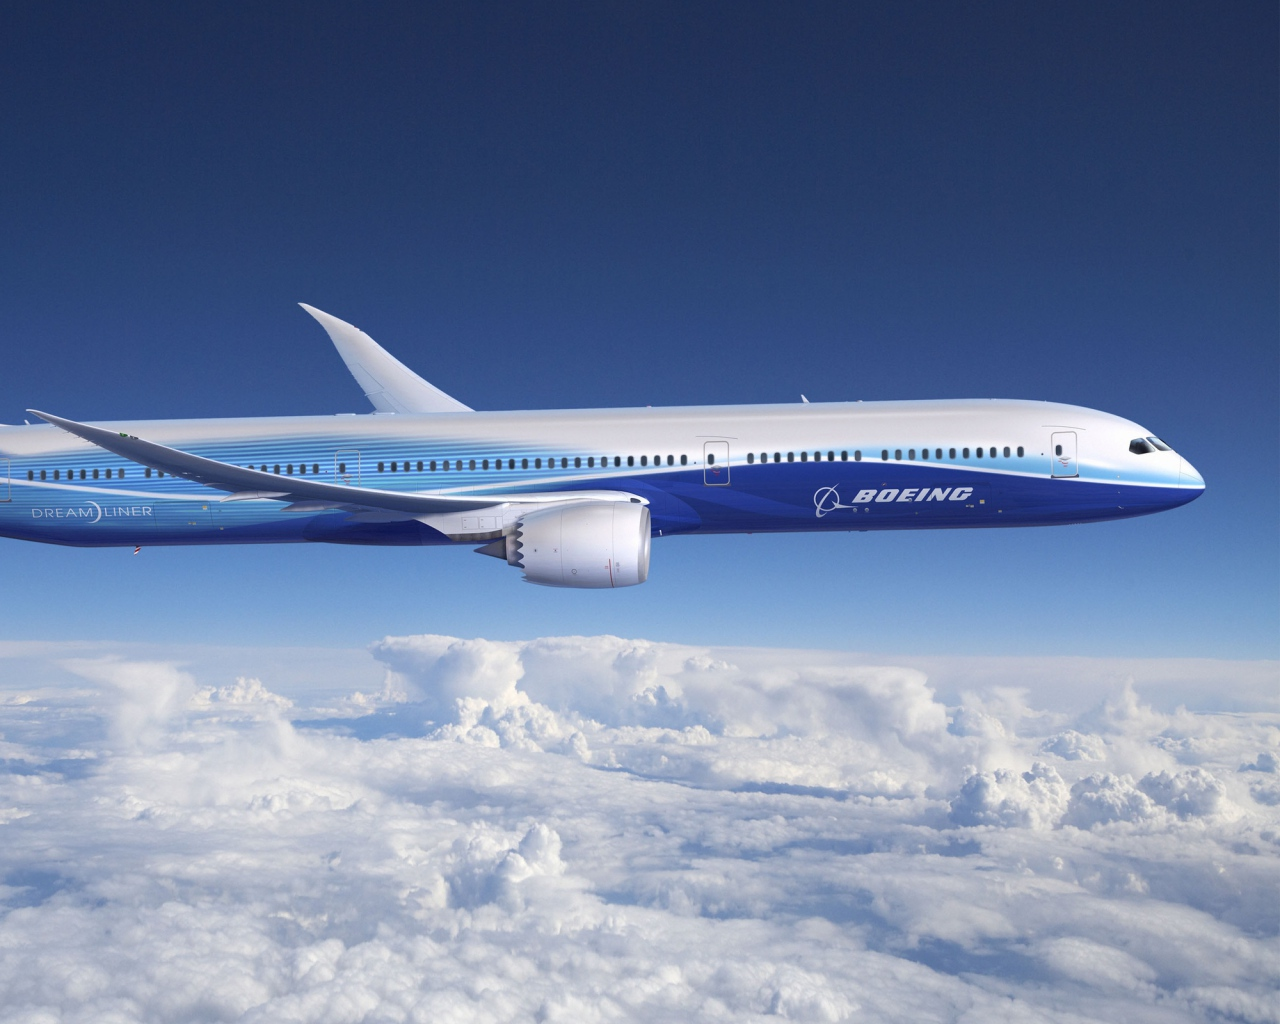 aviation_787_dreamliner_boeing_sky_airplanes_clouds_74193_1280x1024